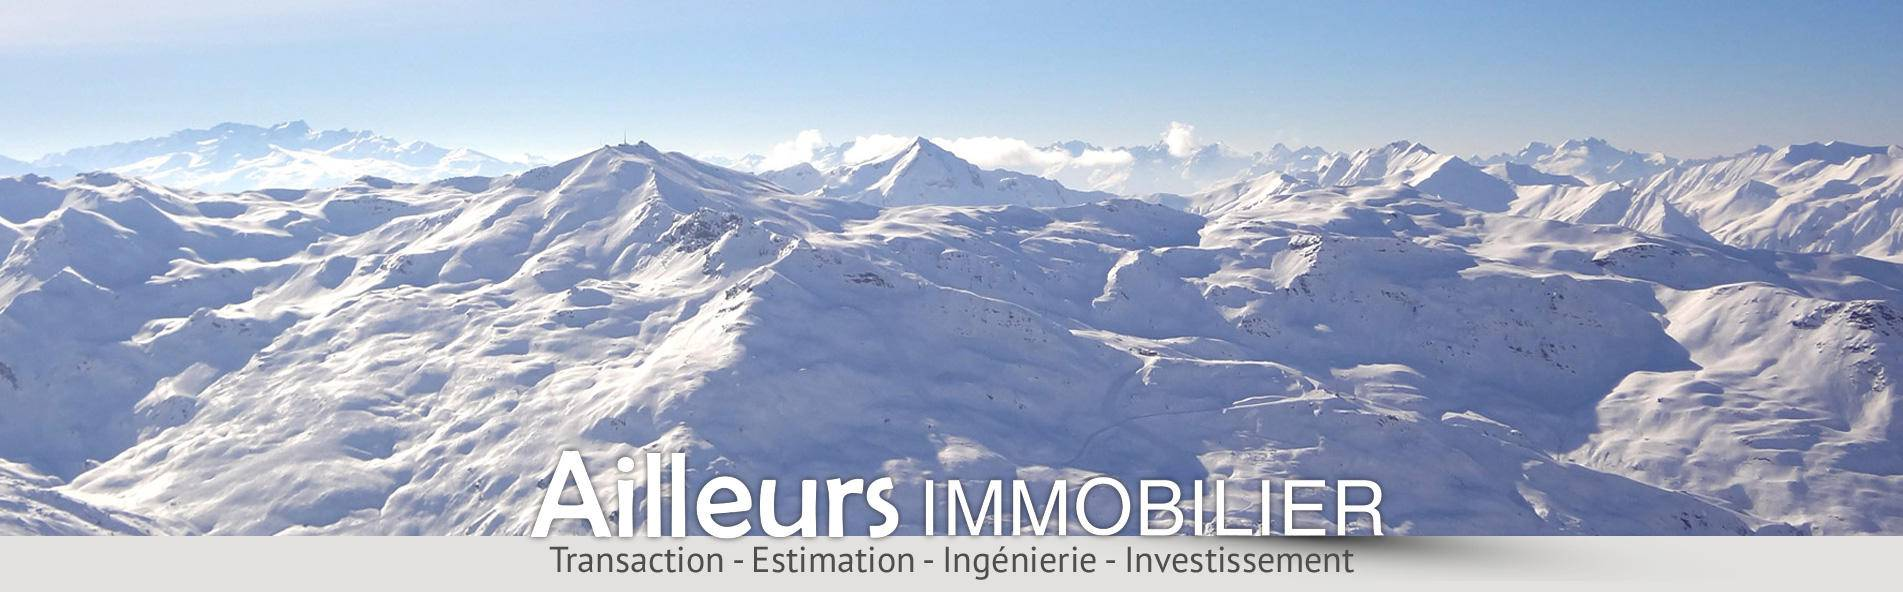 Agence immobili re chamb ry en savoie ailleurs for Agence immobiliere chambery